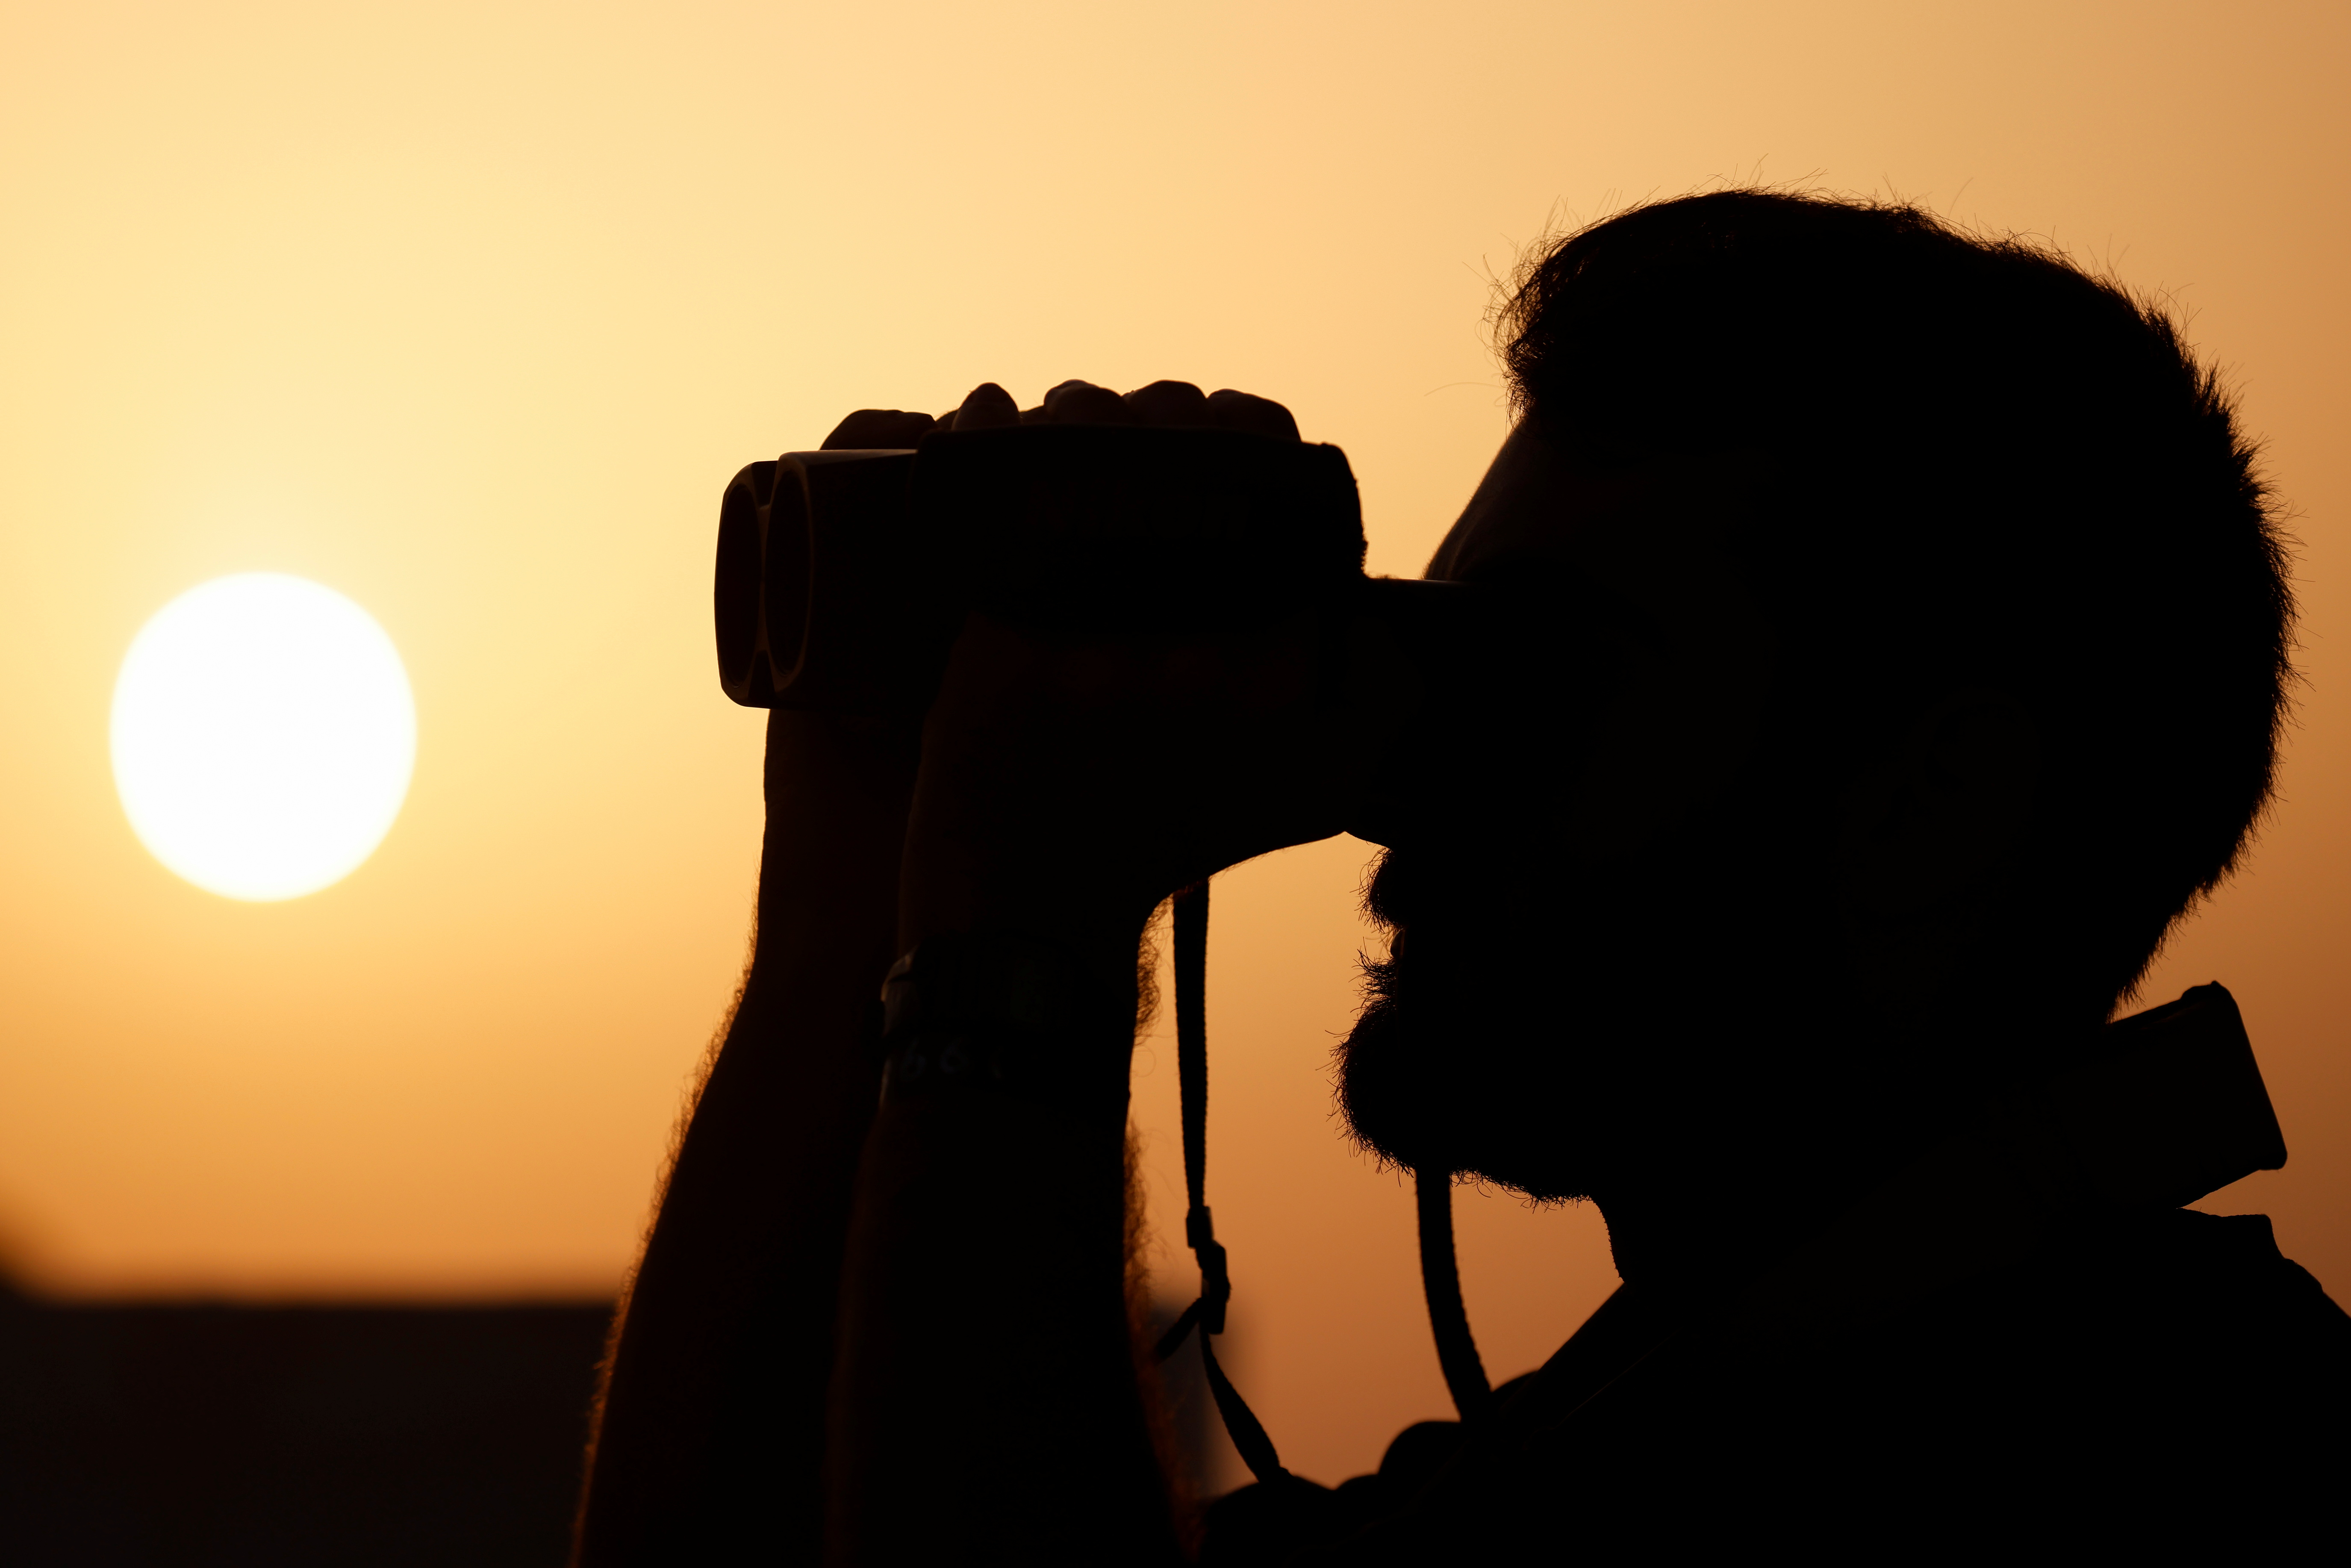 A crew member of the German NGO migrant rescue ship Sea-Watch 3 uses binoculars to keep watch for migrant boats at sunset in the search and rescue zone in international waters off the coast of Libya, in the western Mediterranean Sea, July 26, 2021.  REUTERS/Darrin Zammit Lupi